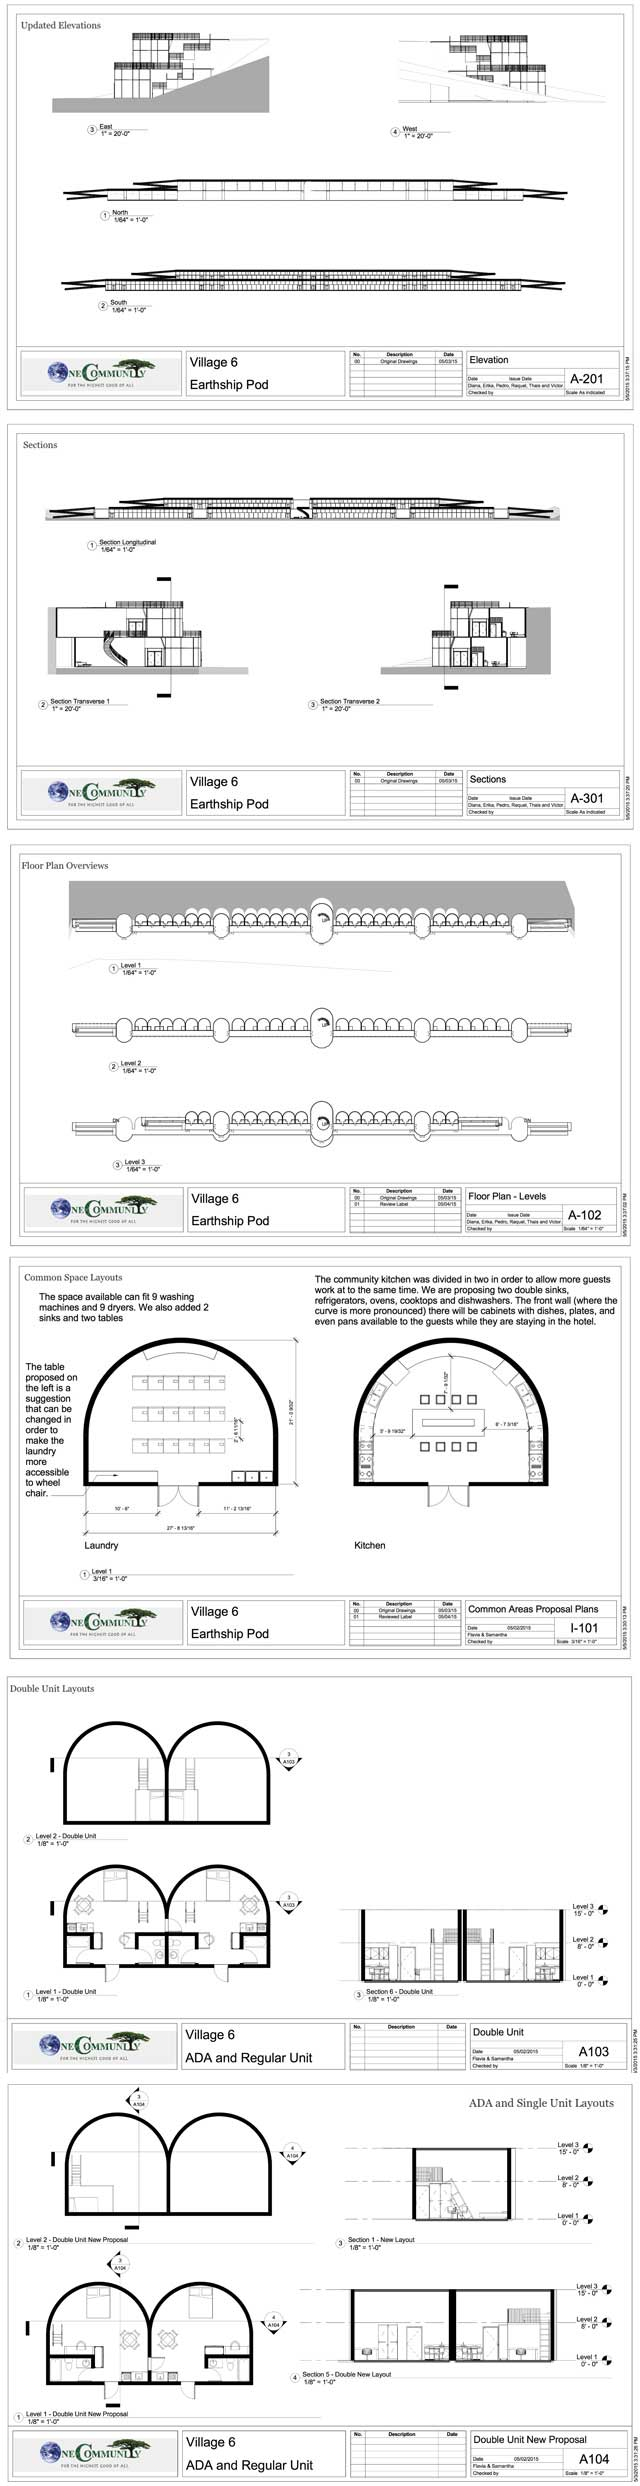 second-round-of-design-layouts-for-the-Earthship-Village,-blog-114-640